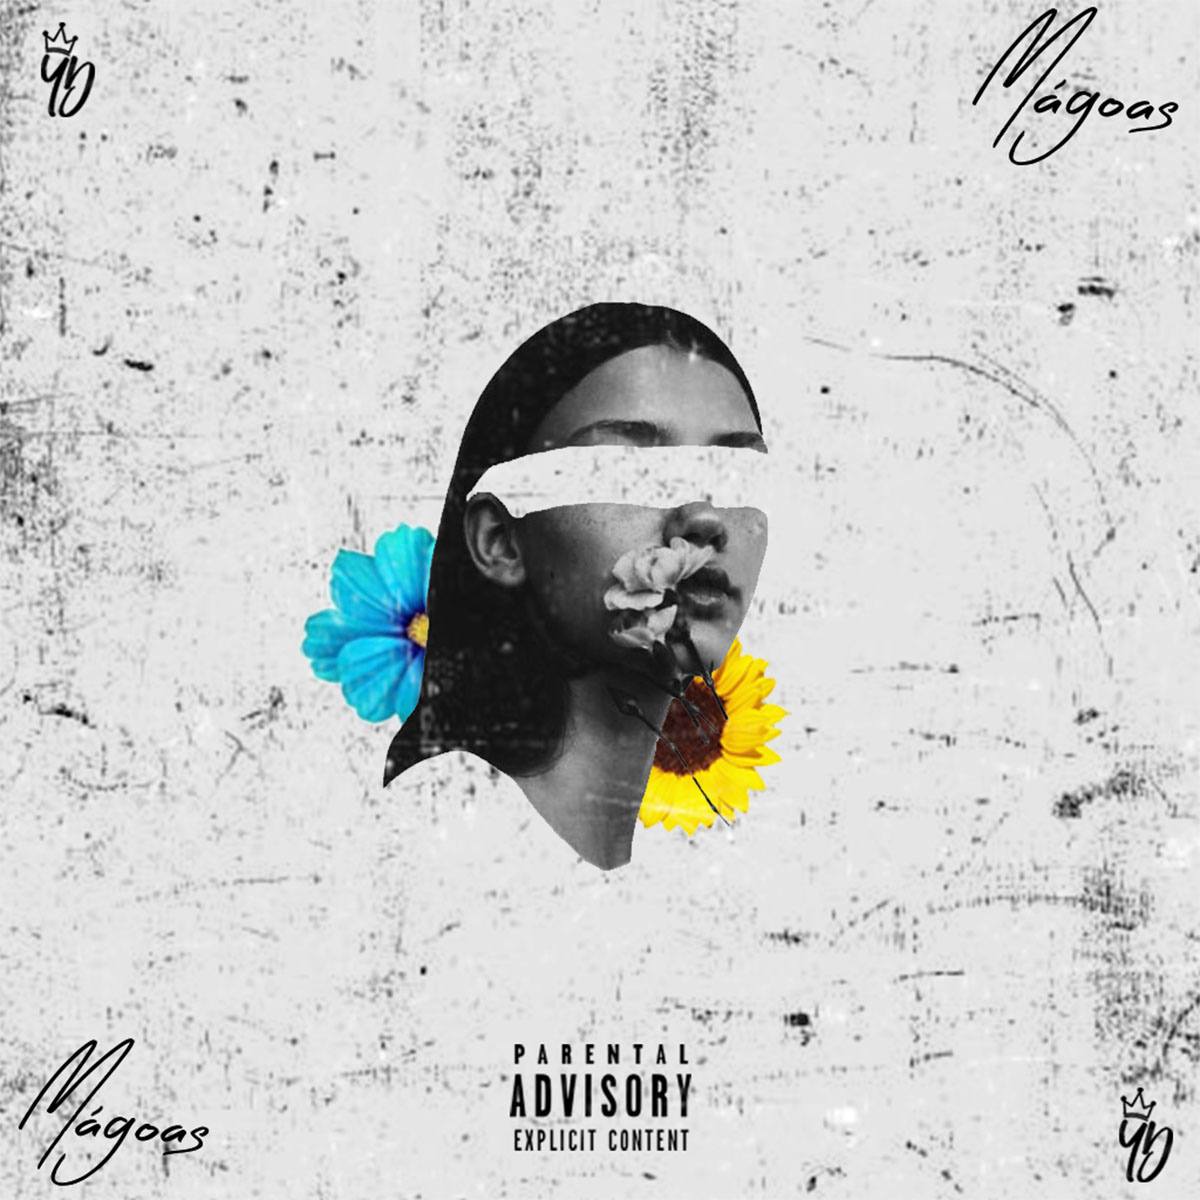 Young Dreamers – Mágoas